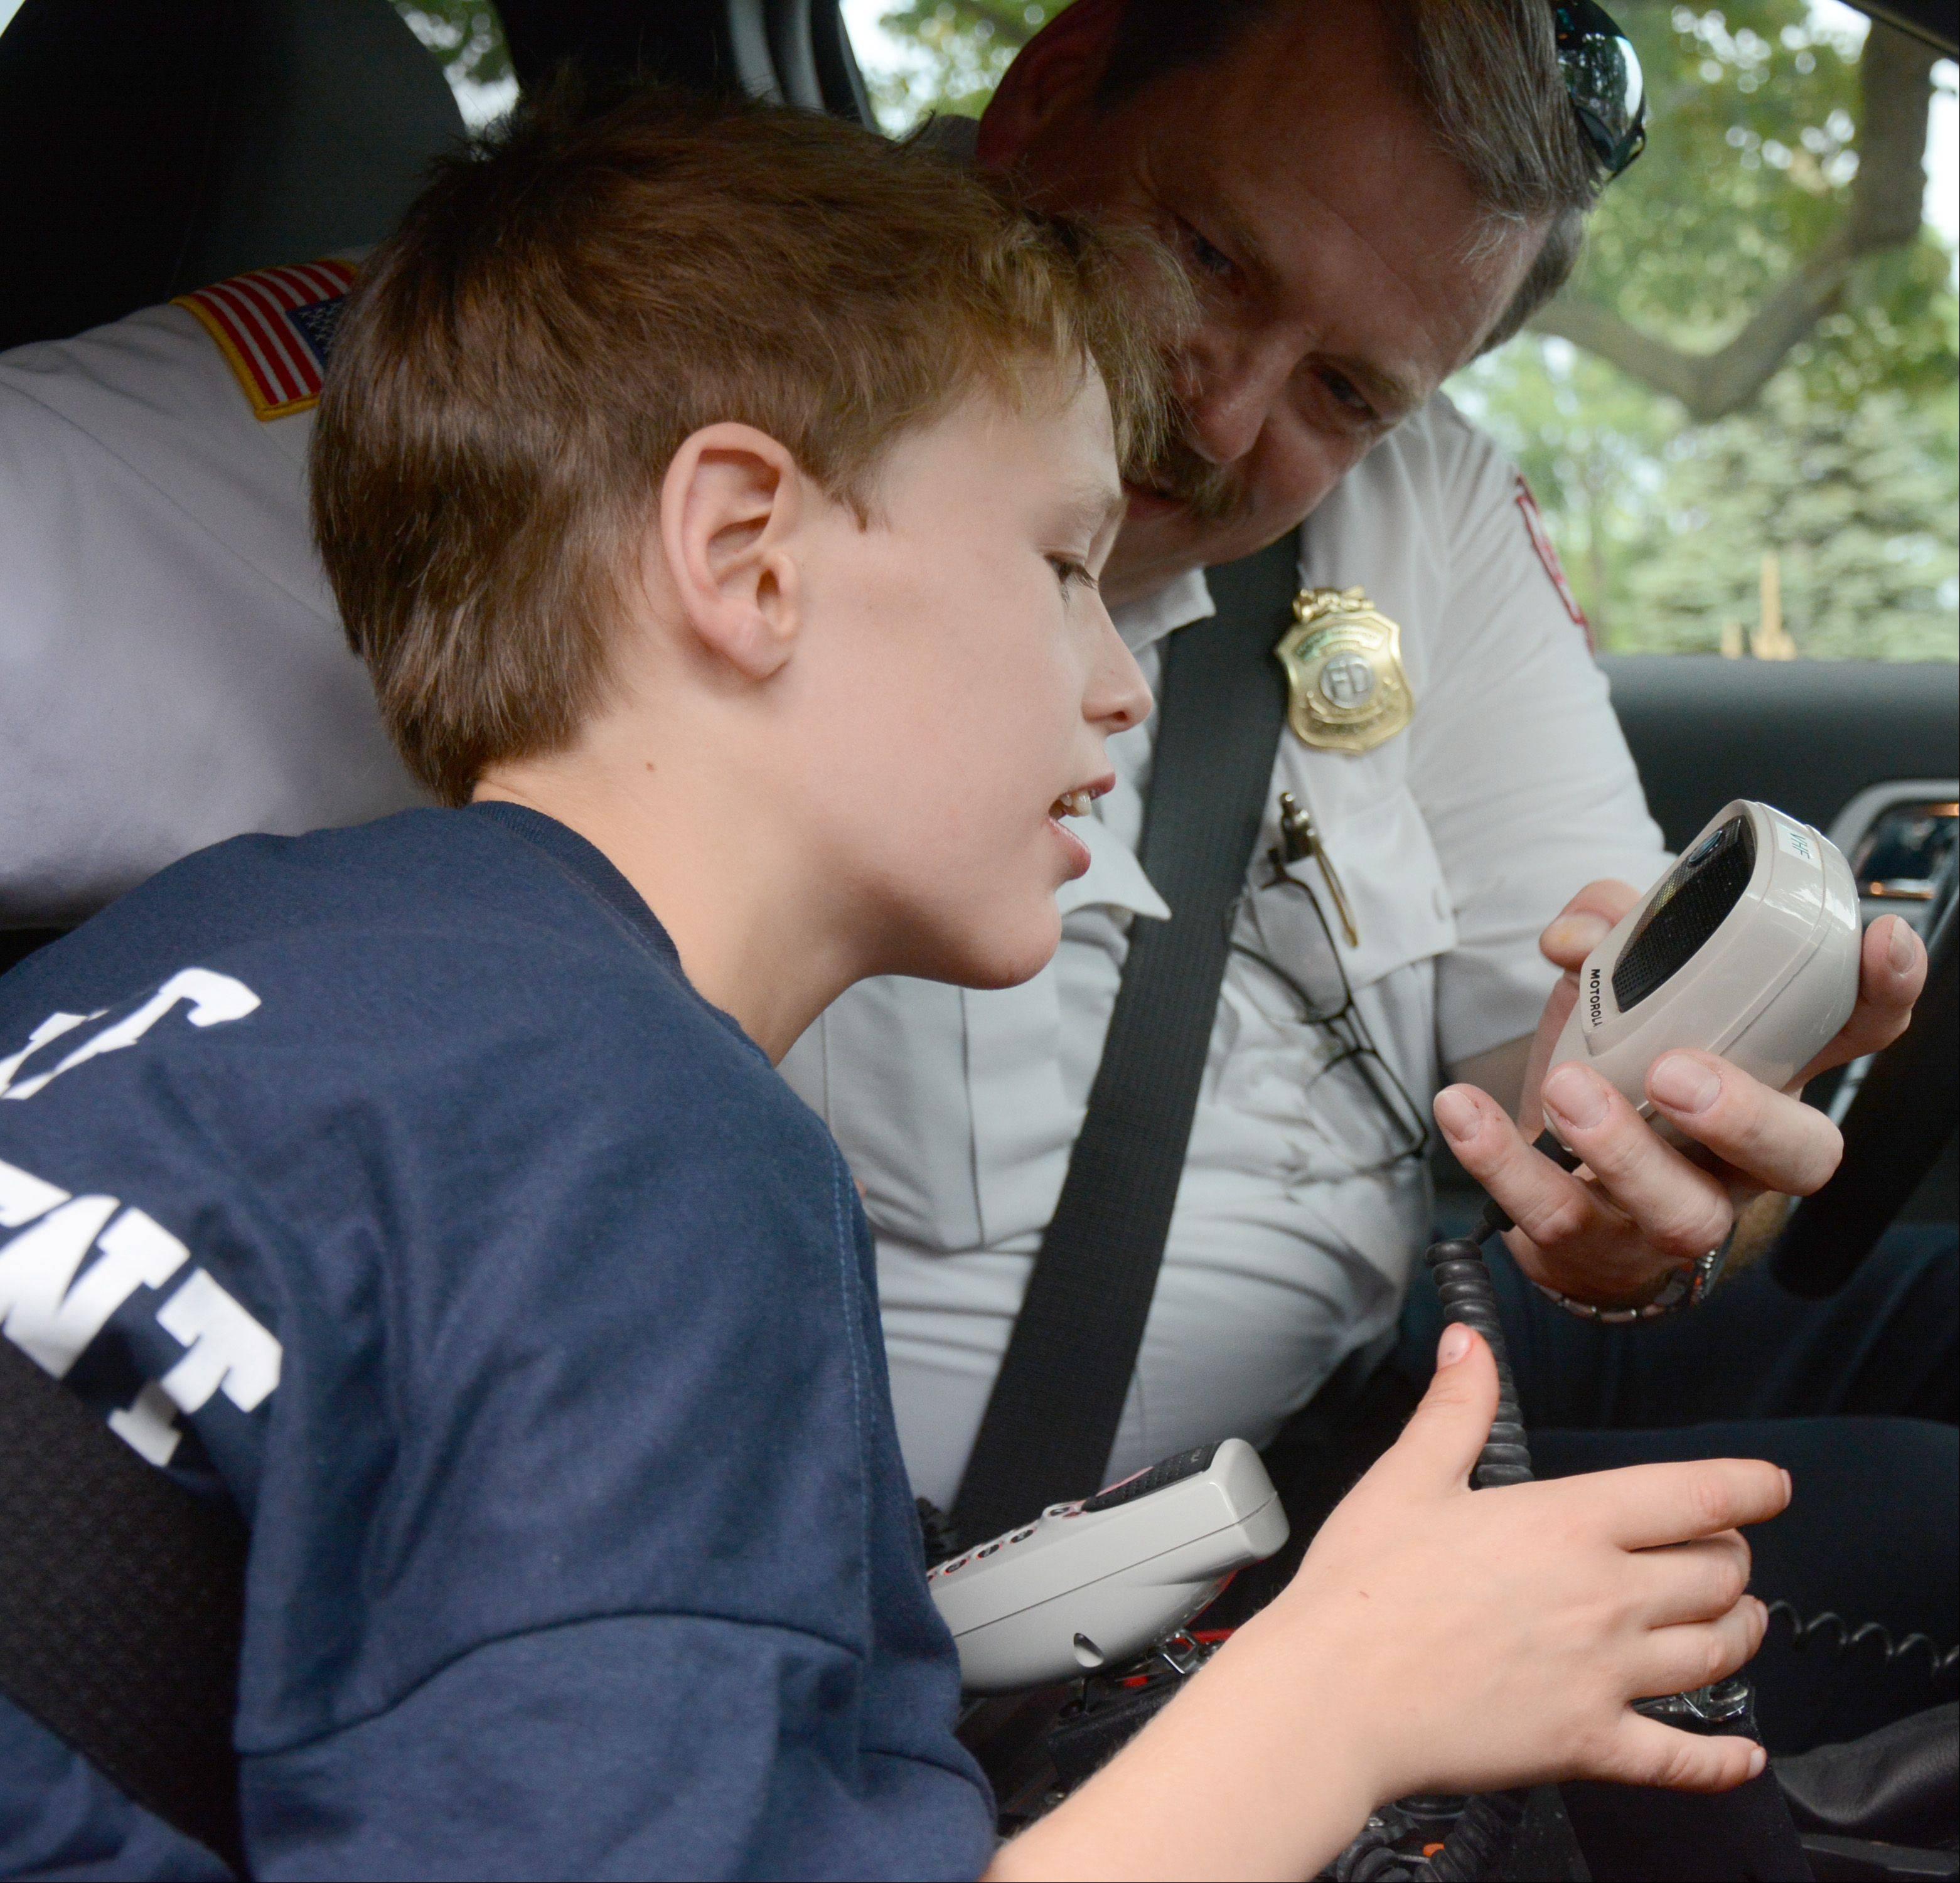 Mount Prospect Deputy Fire Chief Henry Dawson shows Zachary Jakubowski, 11, of Mount Prospect how to work the radio of his SUV during a visit the Mount Prospect Fire Department made to Zachary's home Friday.